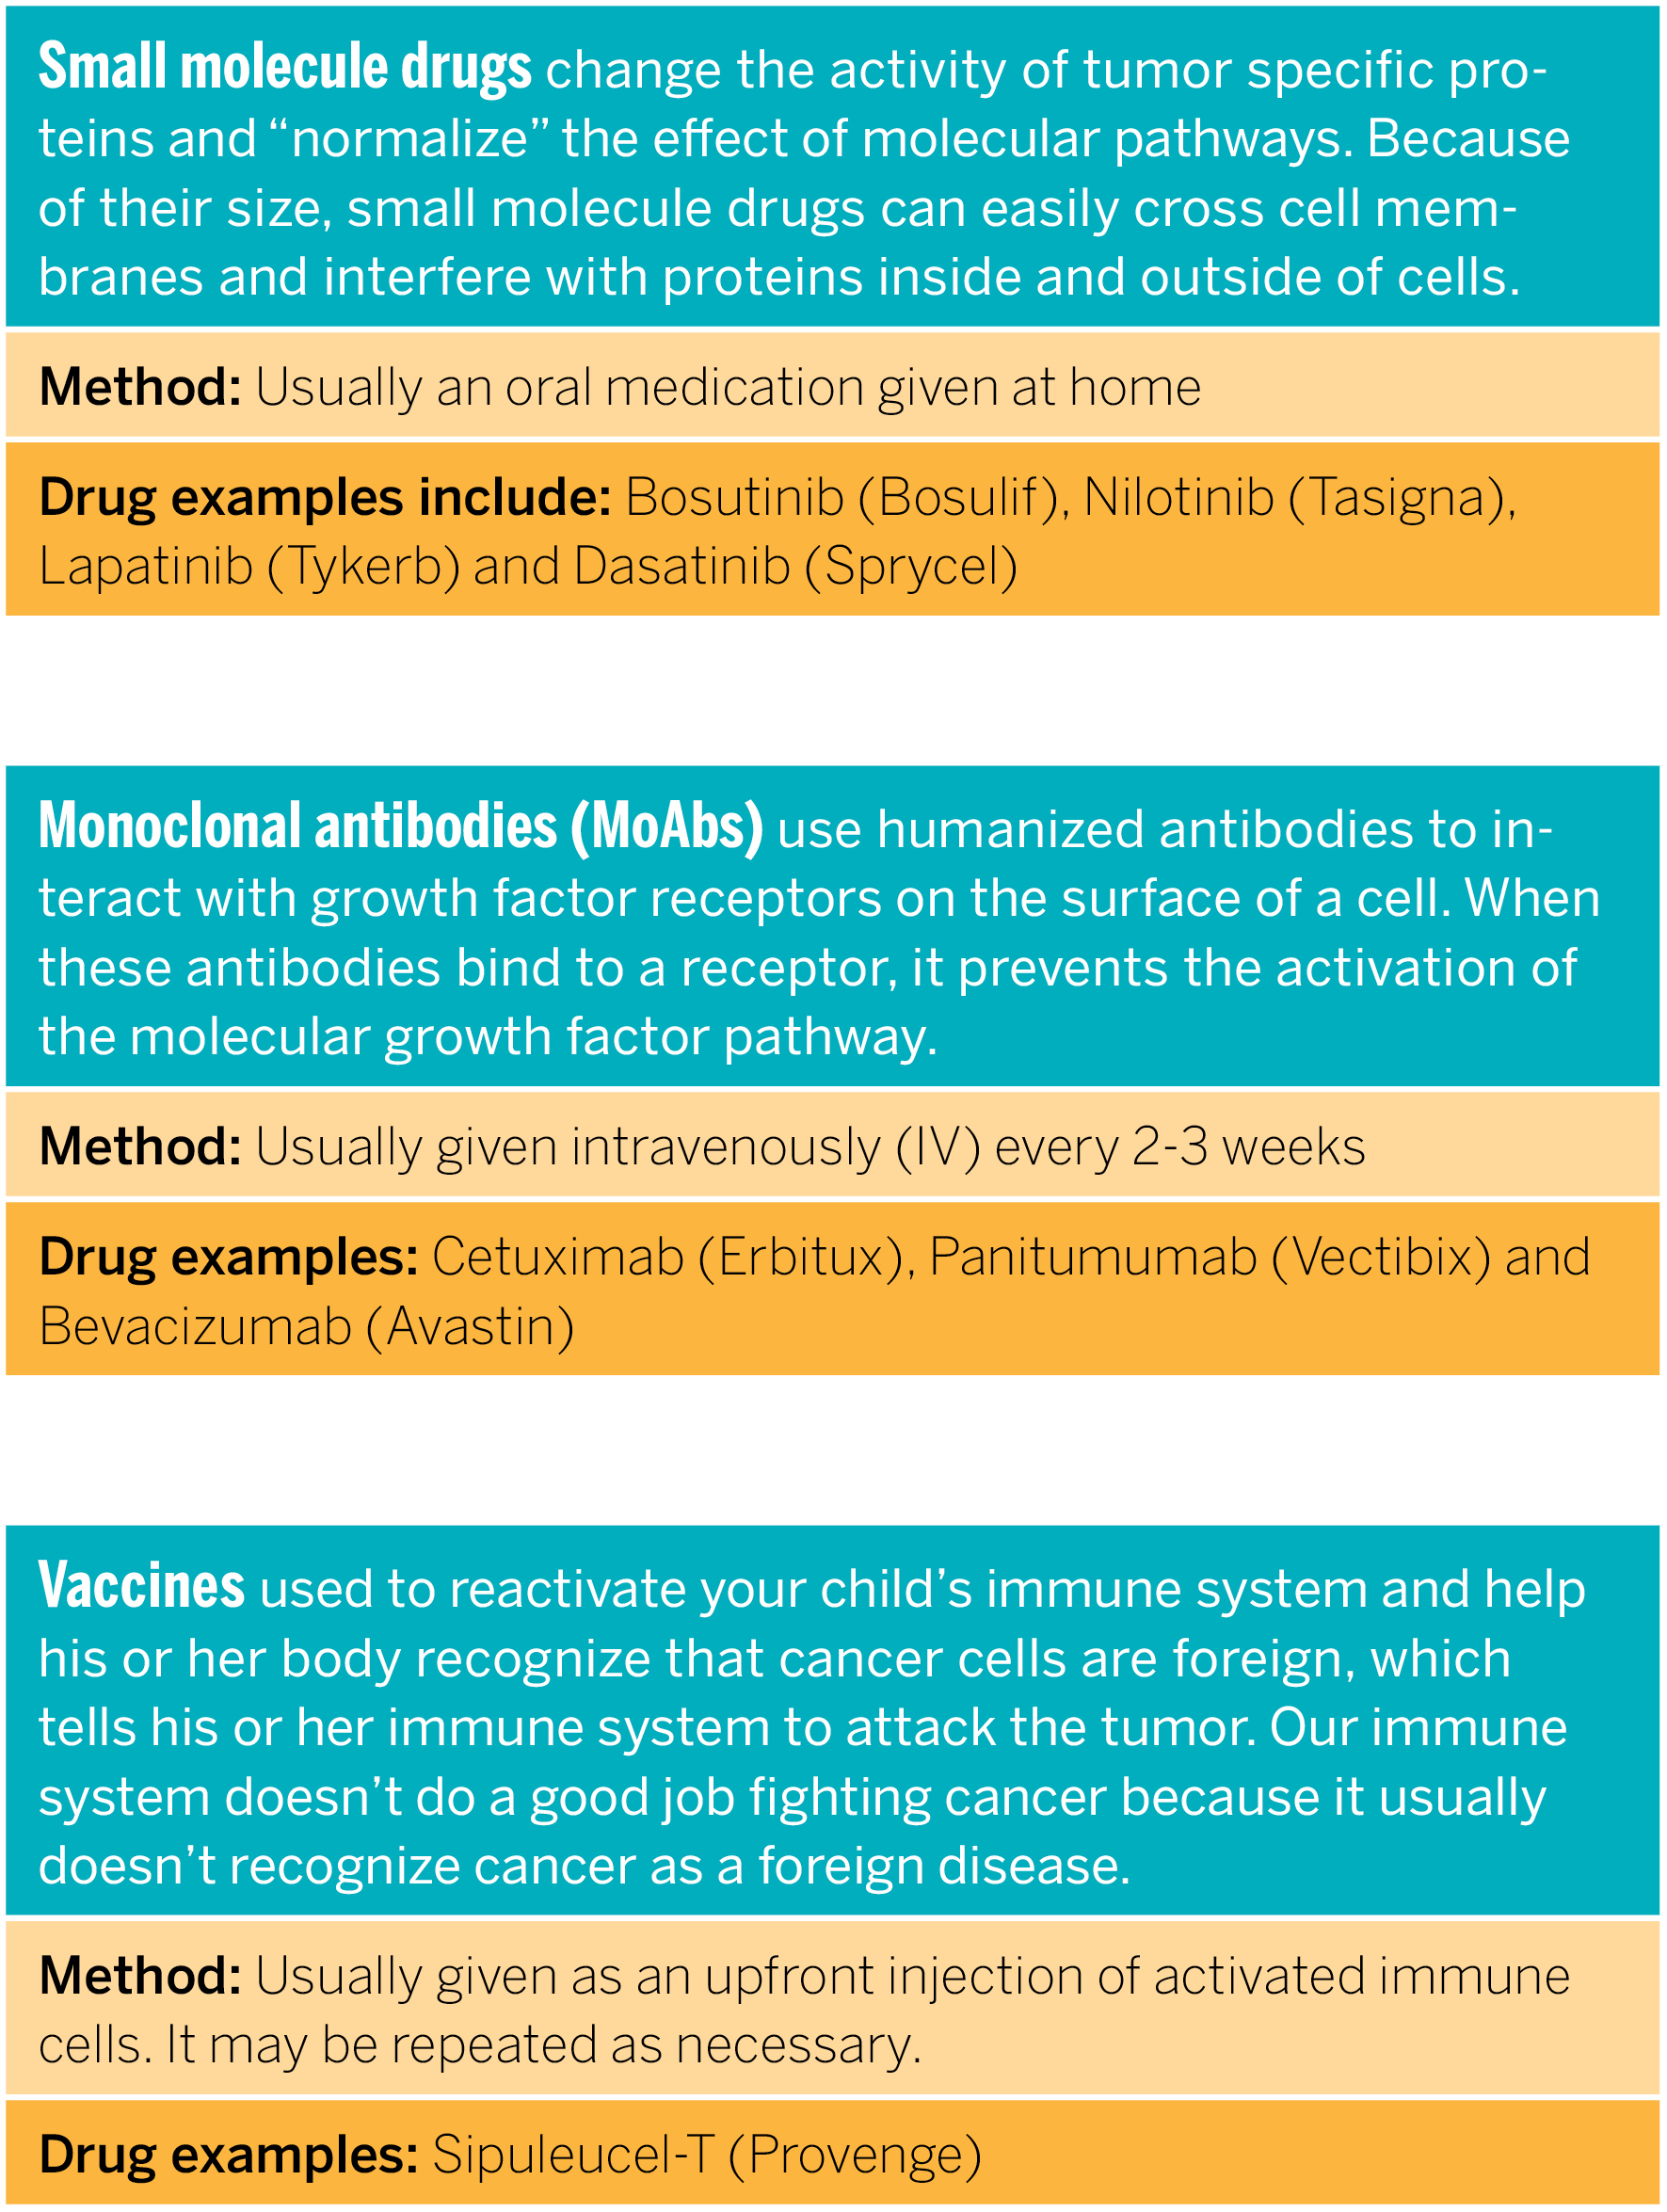 A chart created by Tufts Children's Hospital that describes the different types of targeted therapies available for pediatric cancers.